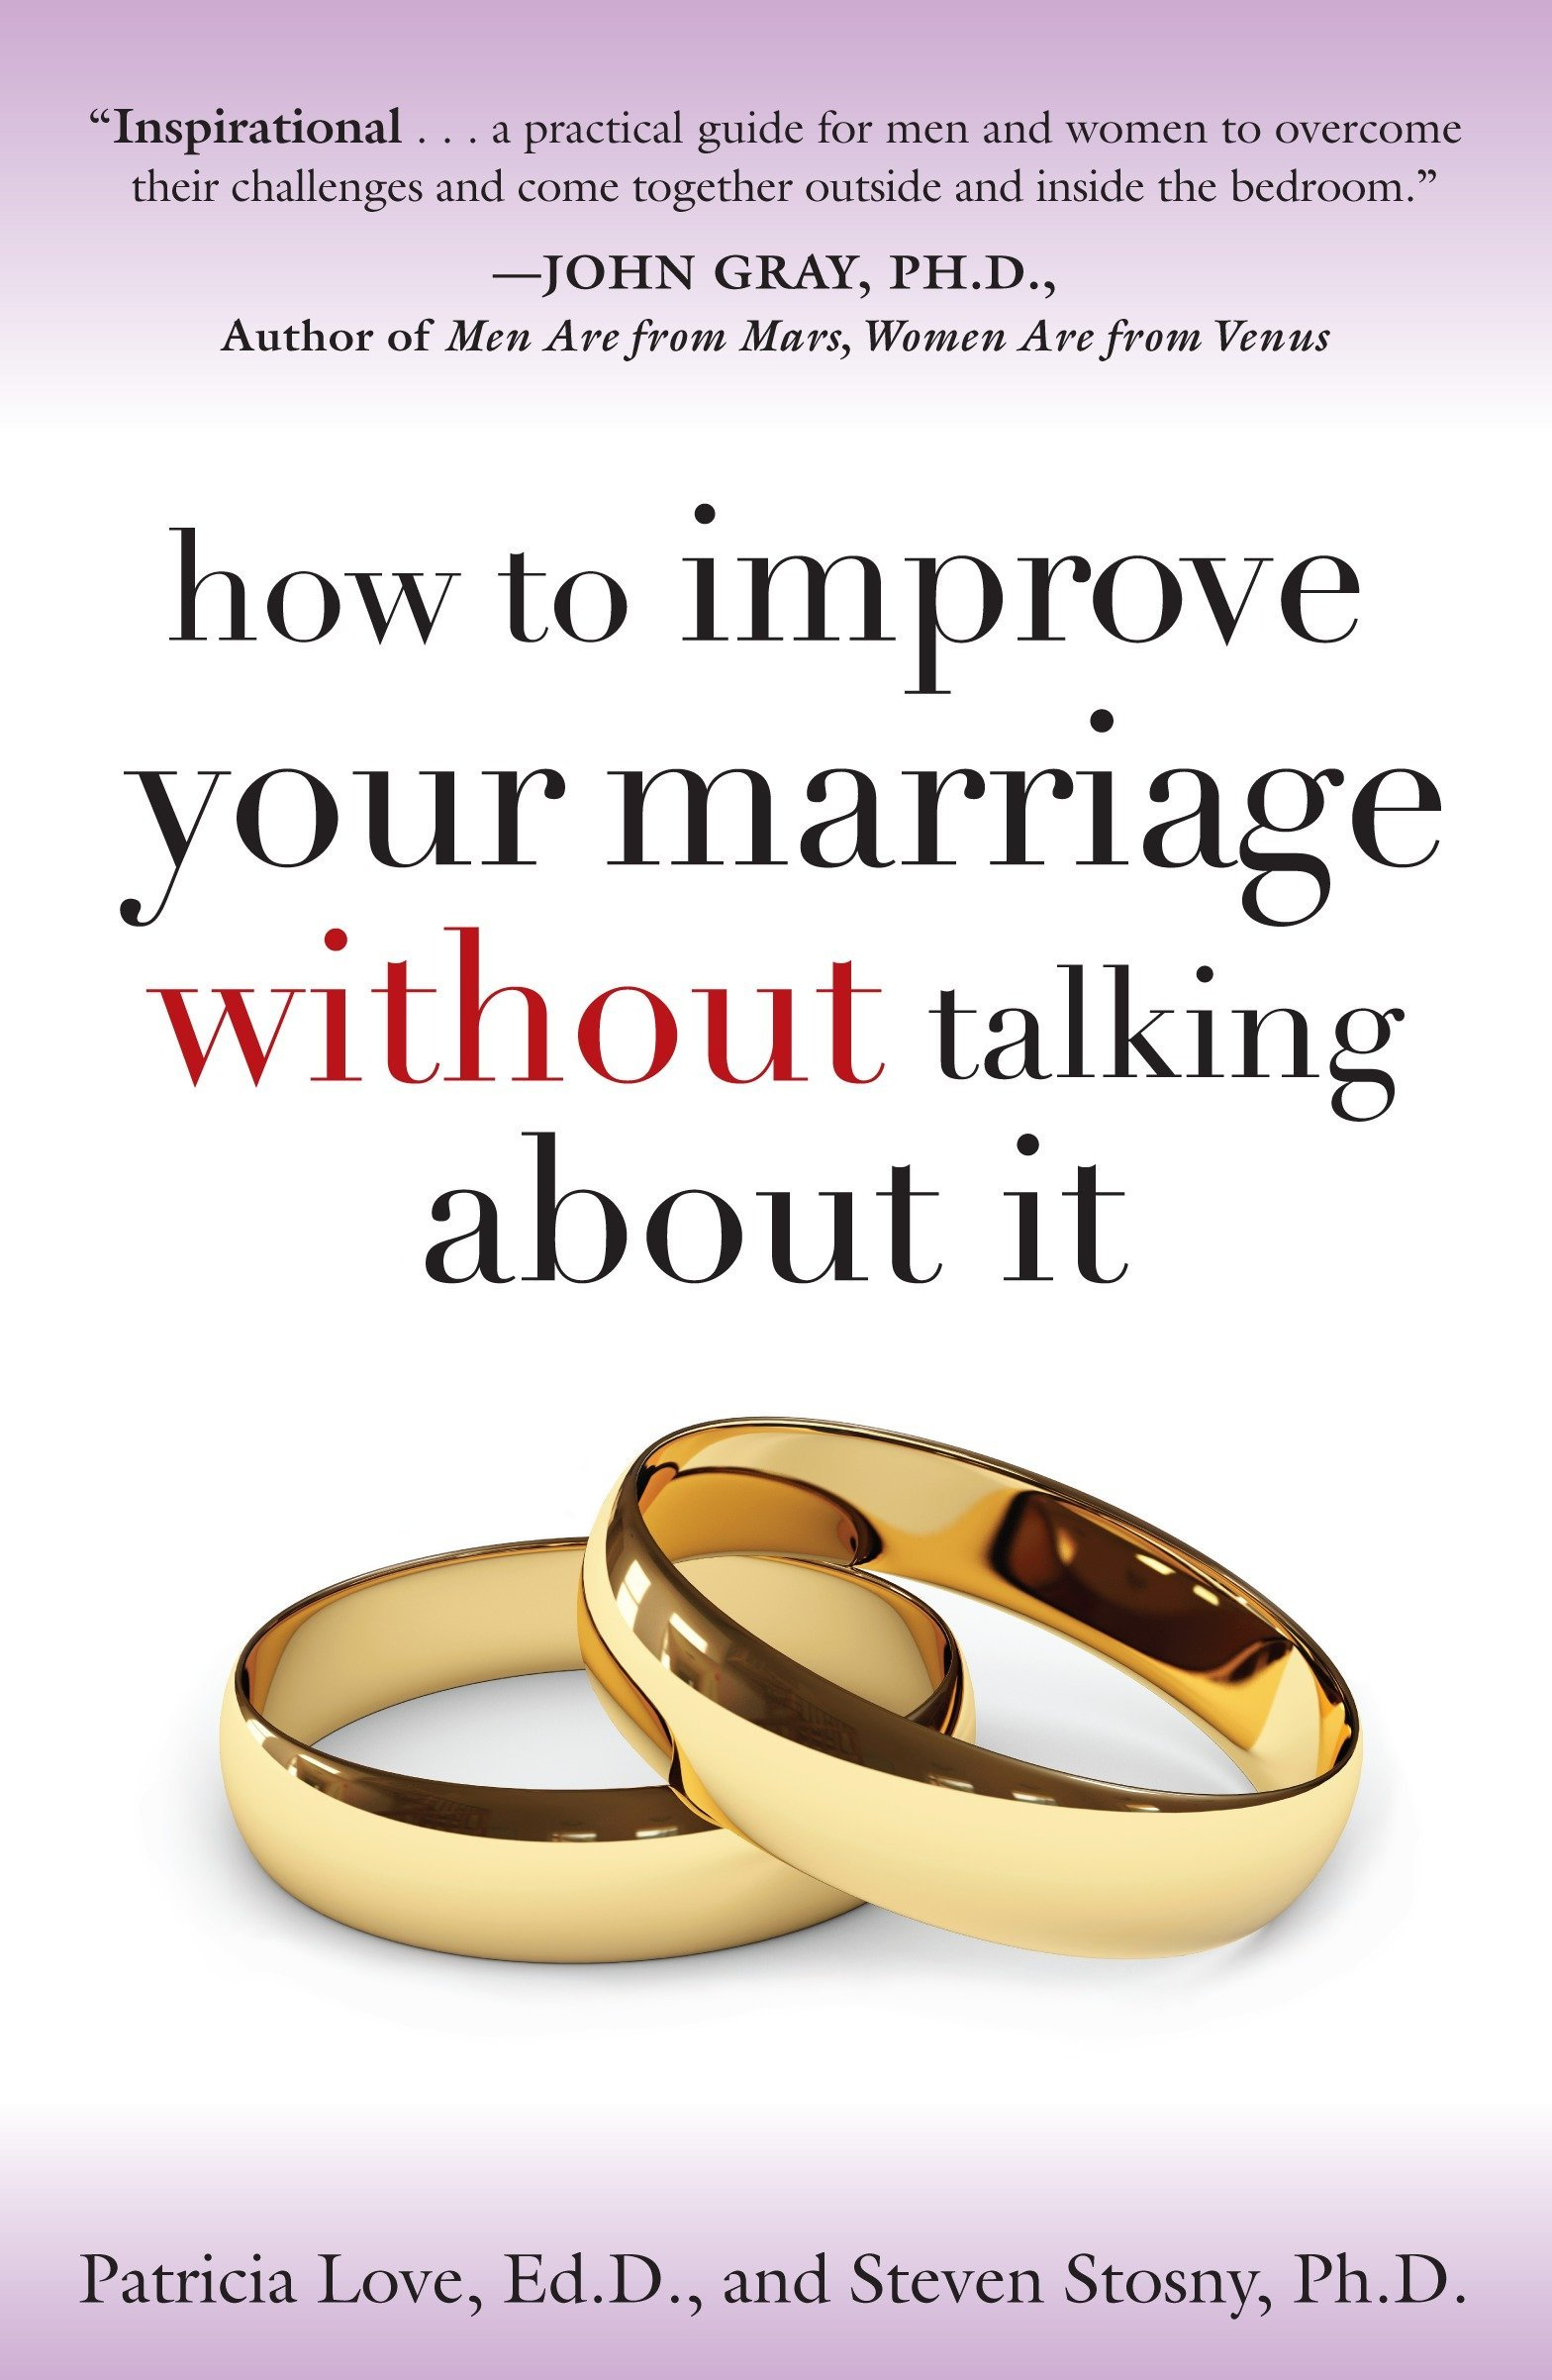 GOLDEN NUGGETS TO MAKE YOUR MARRIAGE WORK (A MARRIAGE AND RELATIONSHIPS HEALING SERIES)